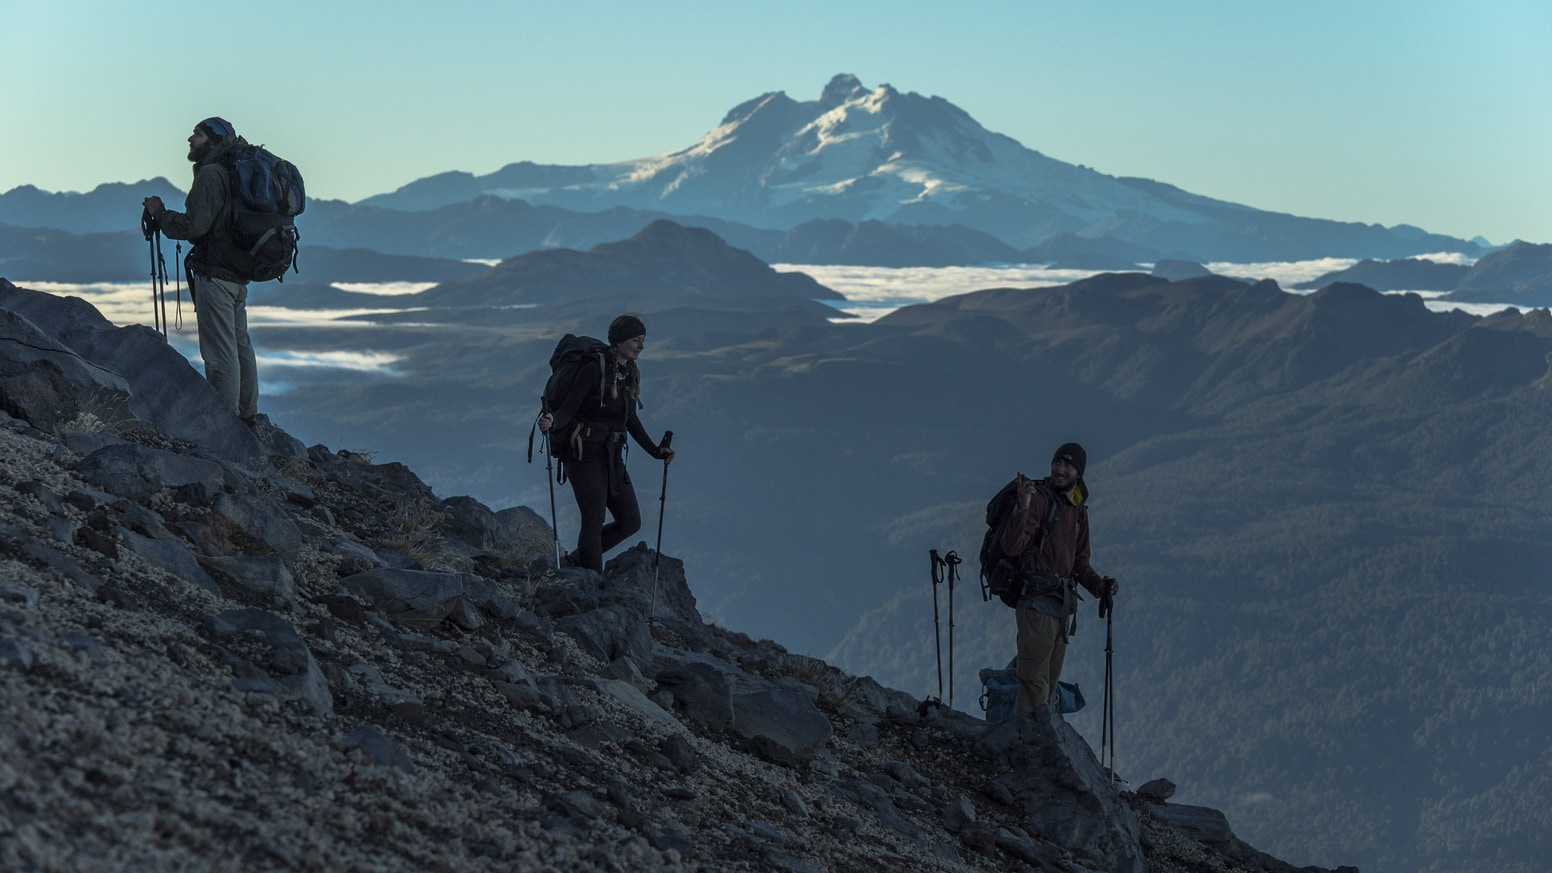 4 travelers. 4 months. No support team. A documentary following an adventure into Patagonia for exploration and conservation.